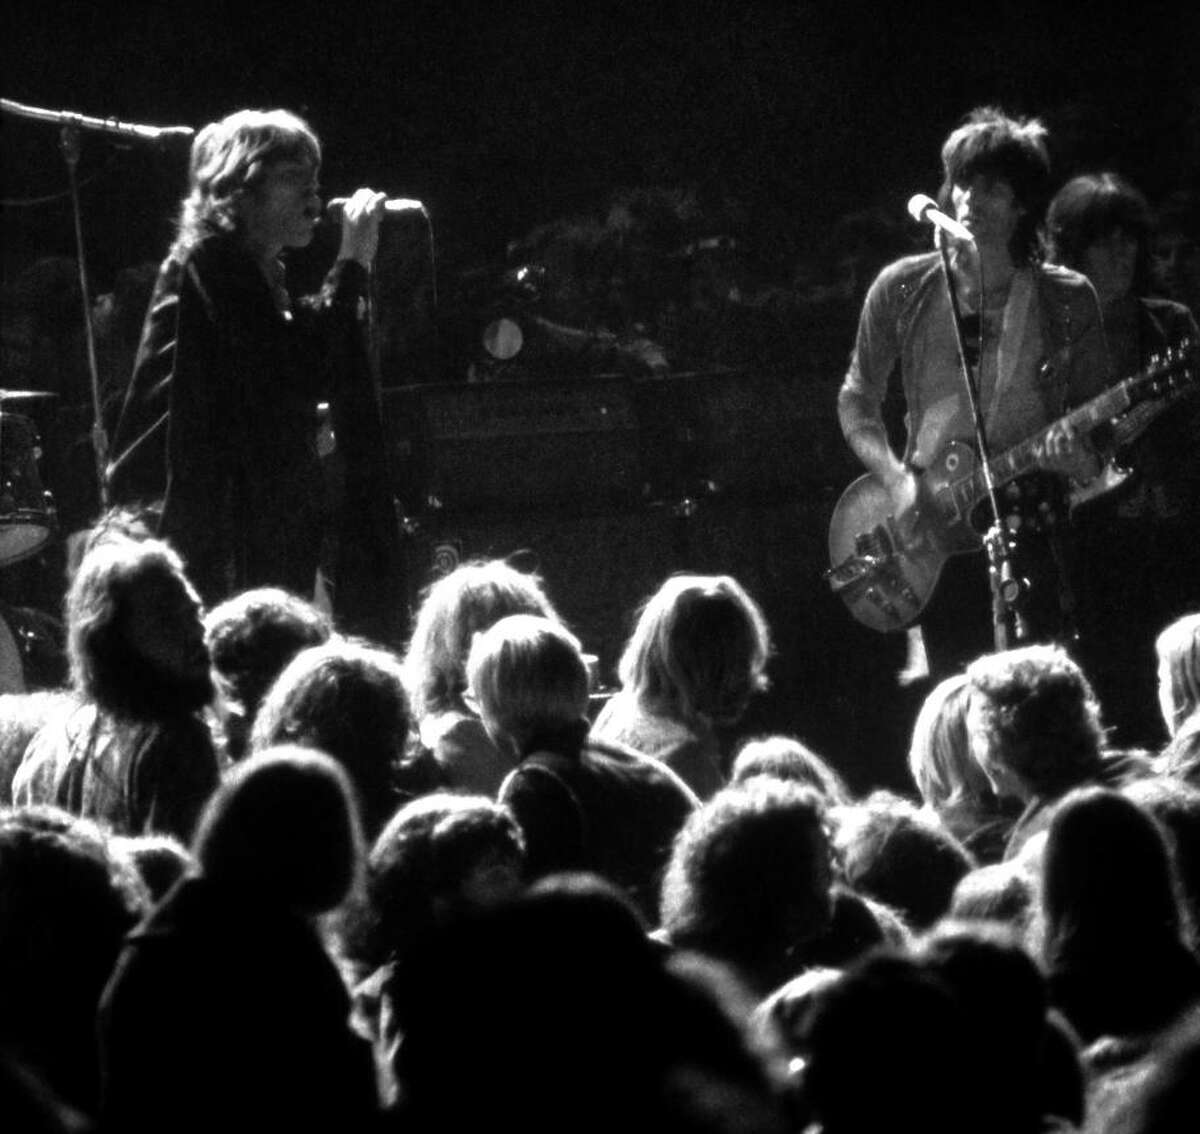 Mick Jagger (left) and Keith Richards perform with the Rolling Stones at the ill-fated Altamont festival.